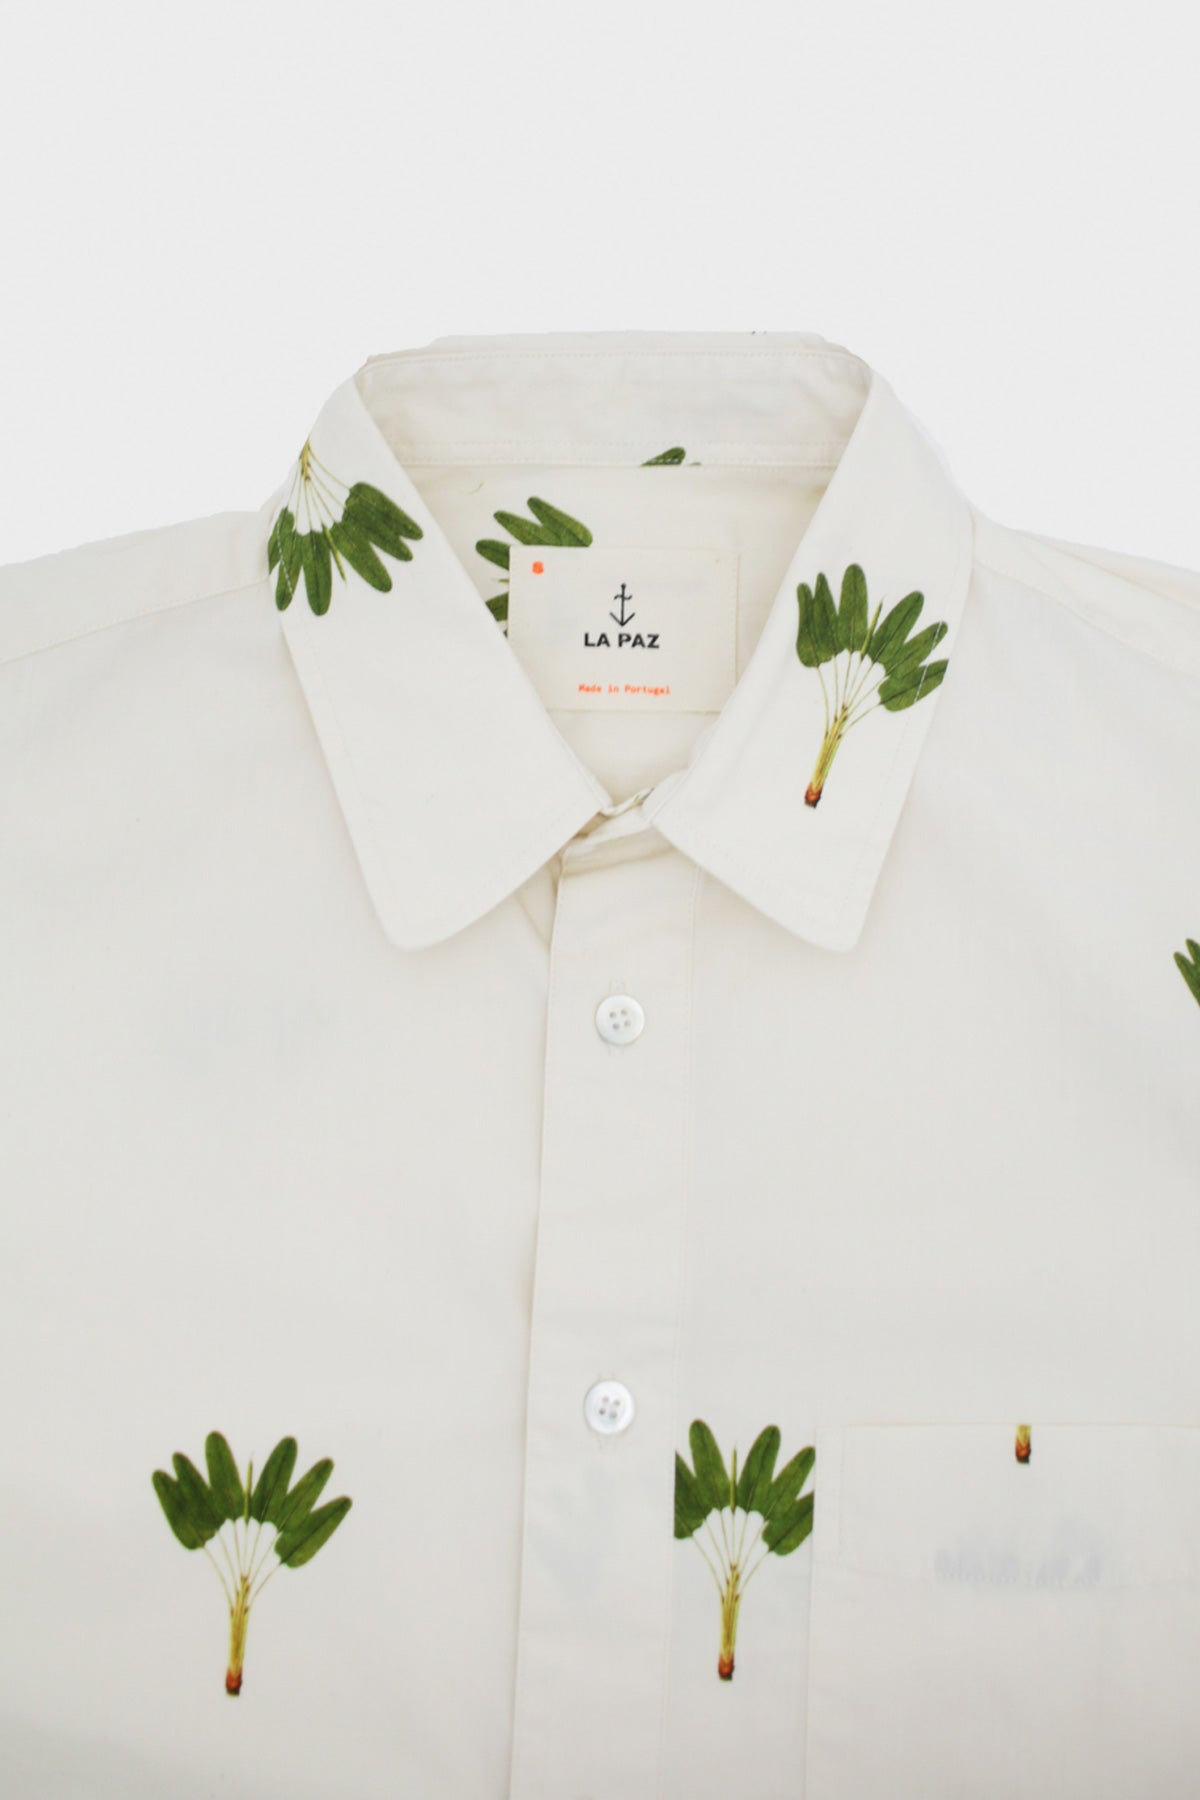 La Paz - ALEGRE Printed Shirt - Palm - Canoe Club